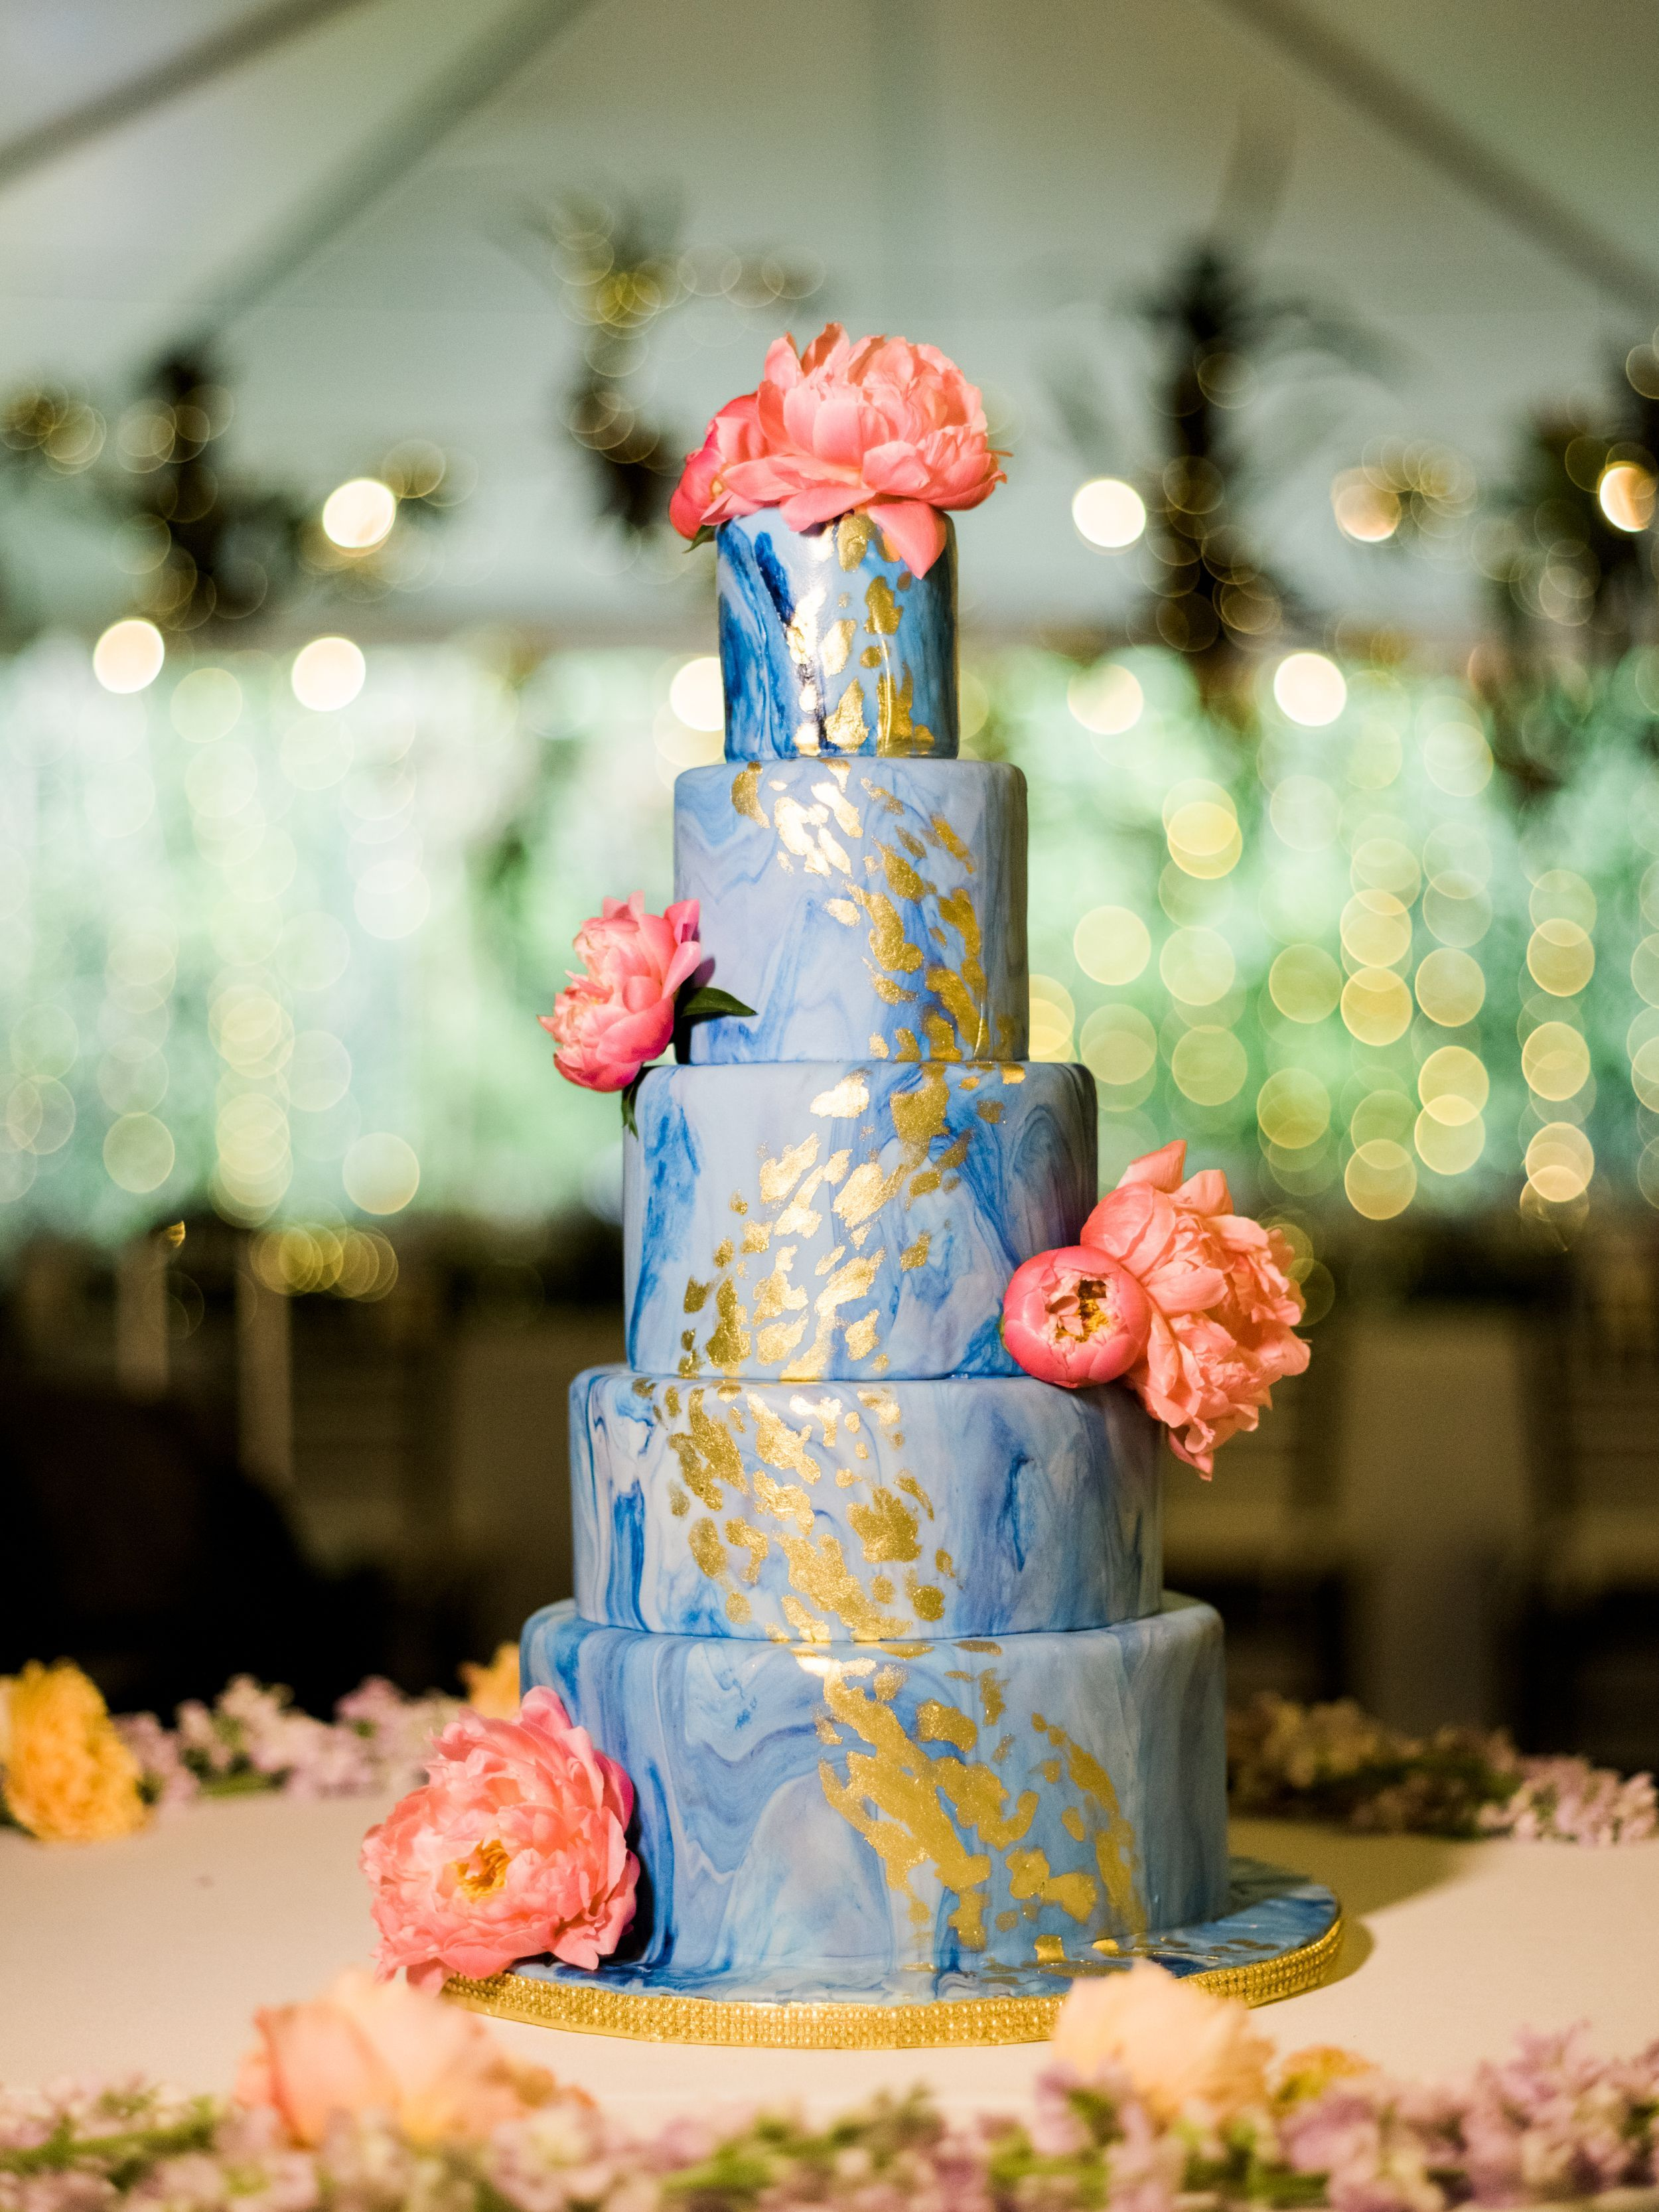 Blue and white marble fondant cake with gold accents with